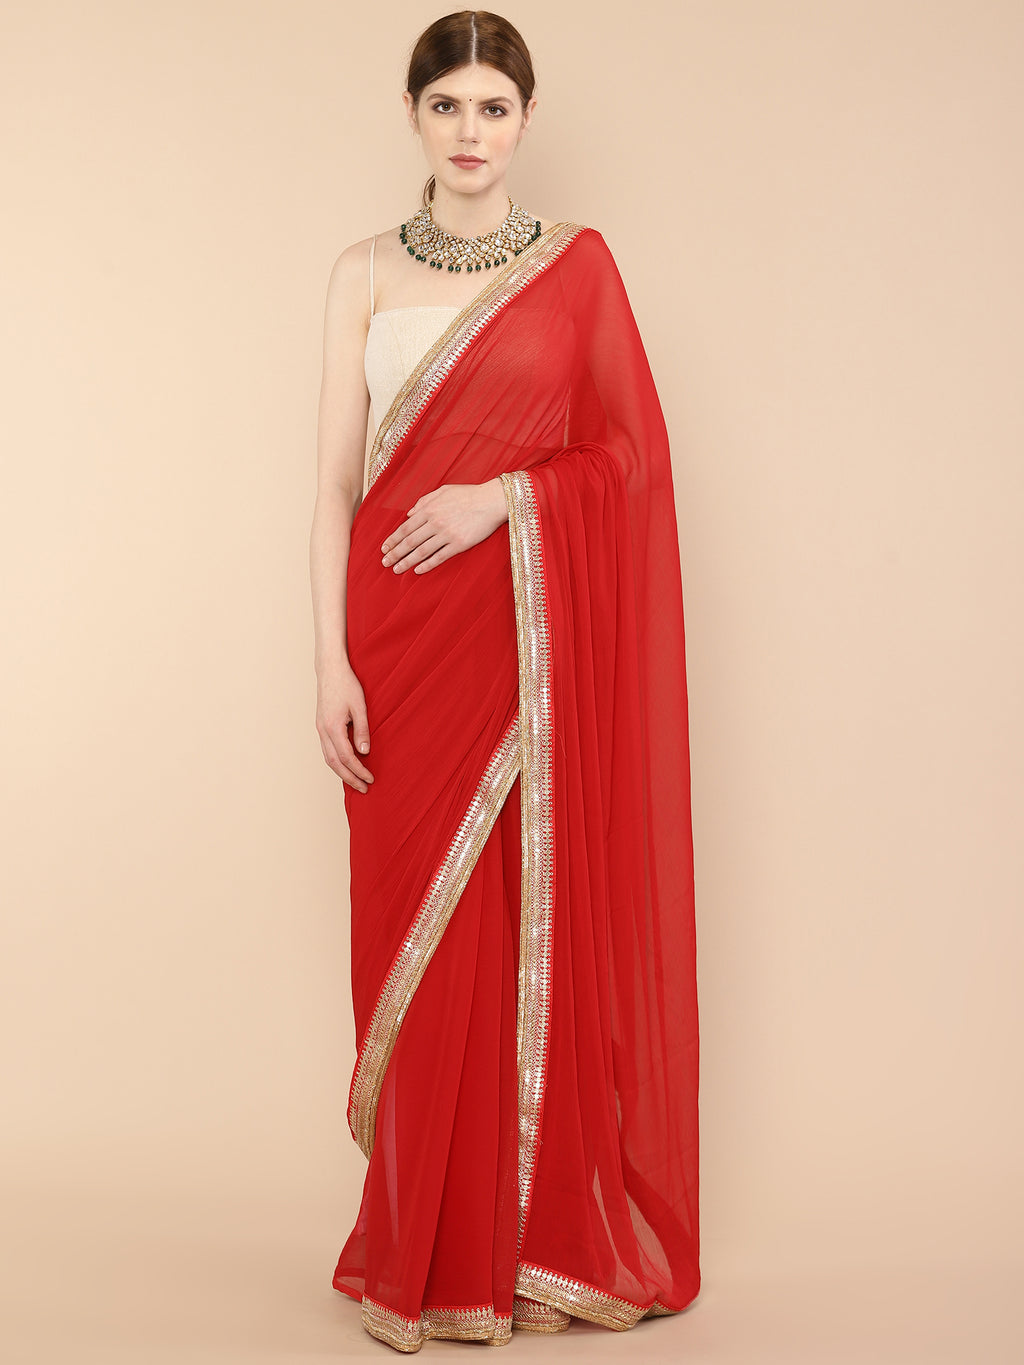 Red Chiffon Saree with embroidered border